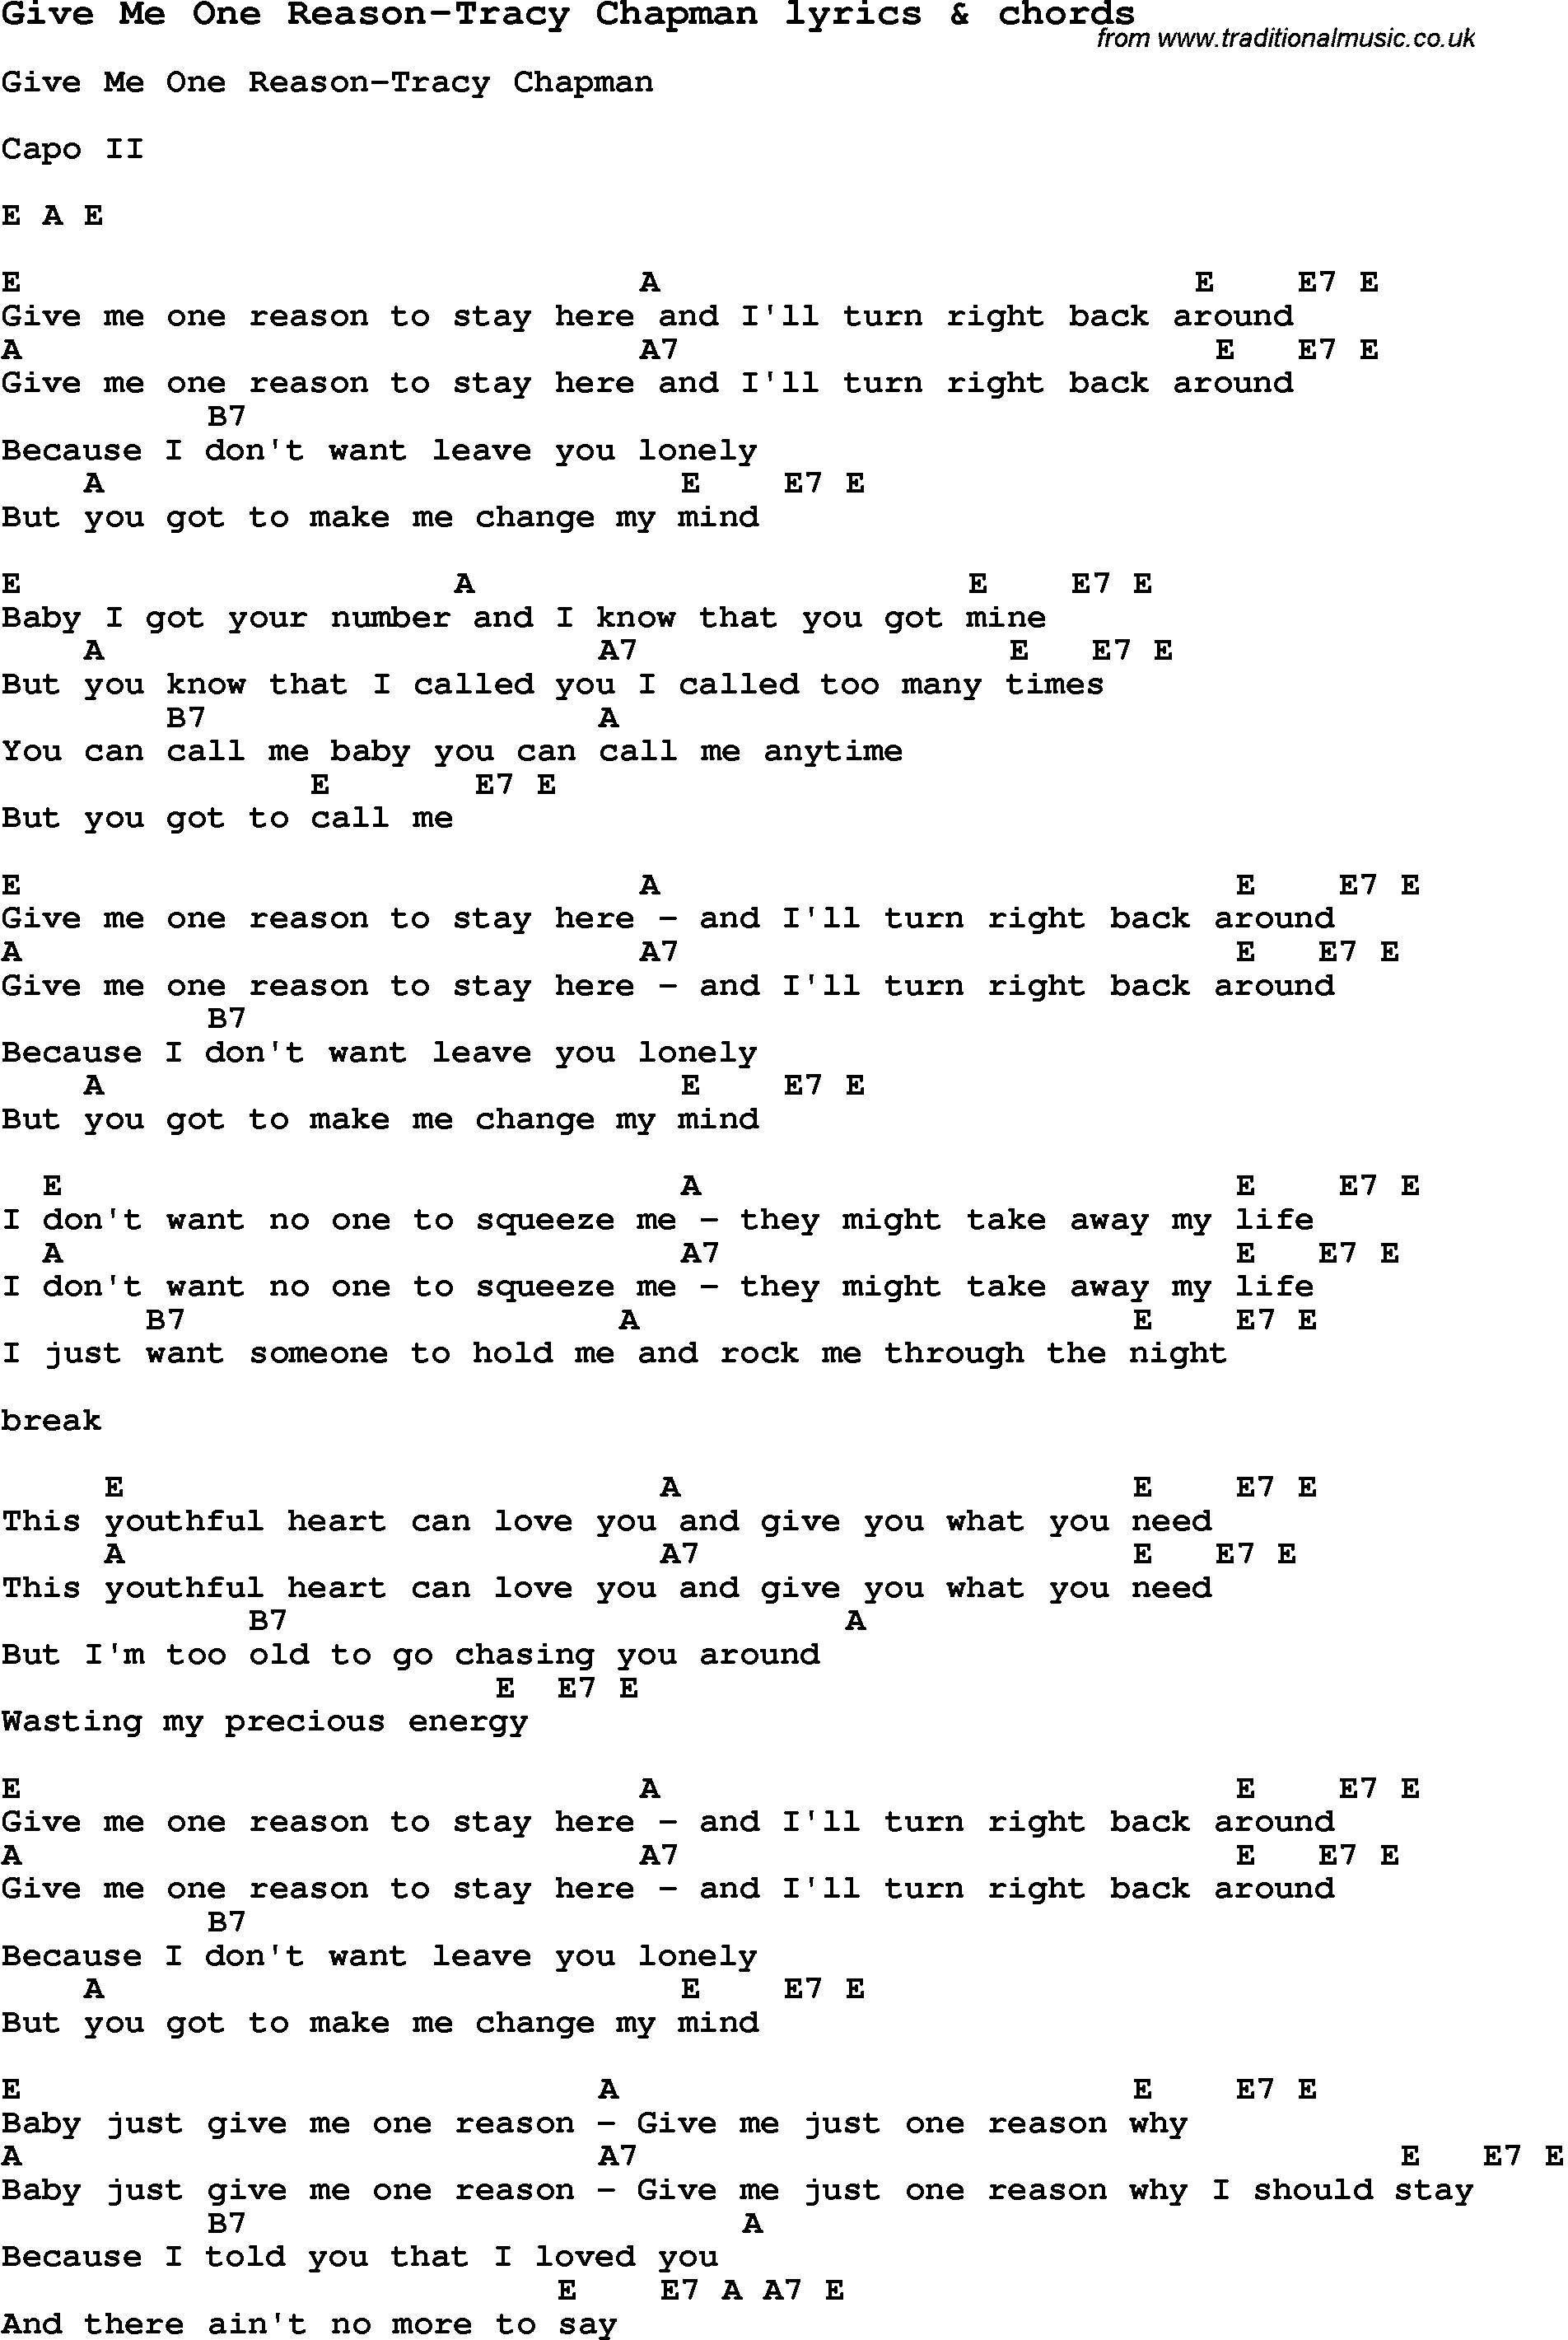 Love song lyrics for give me one reason tracy chapman with chords love song lyrics for give me one reason tracy chapman with chords for ukulele hexwebz Images